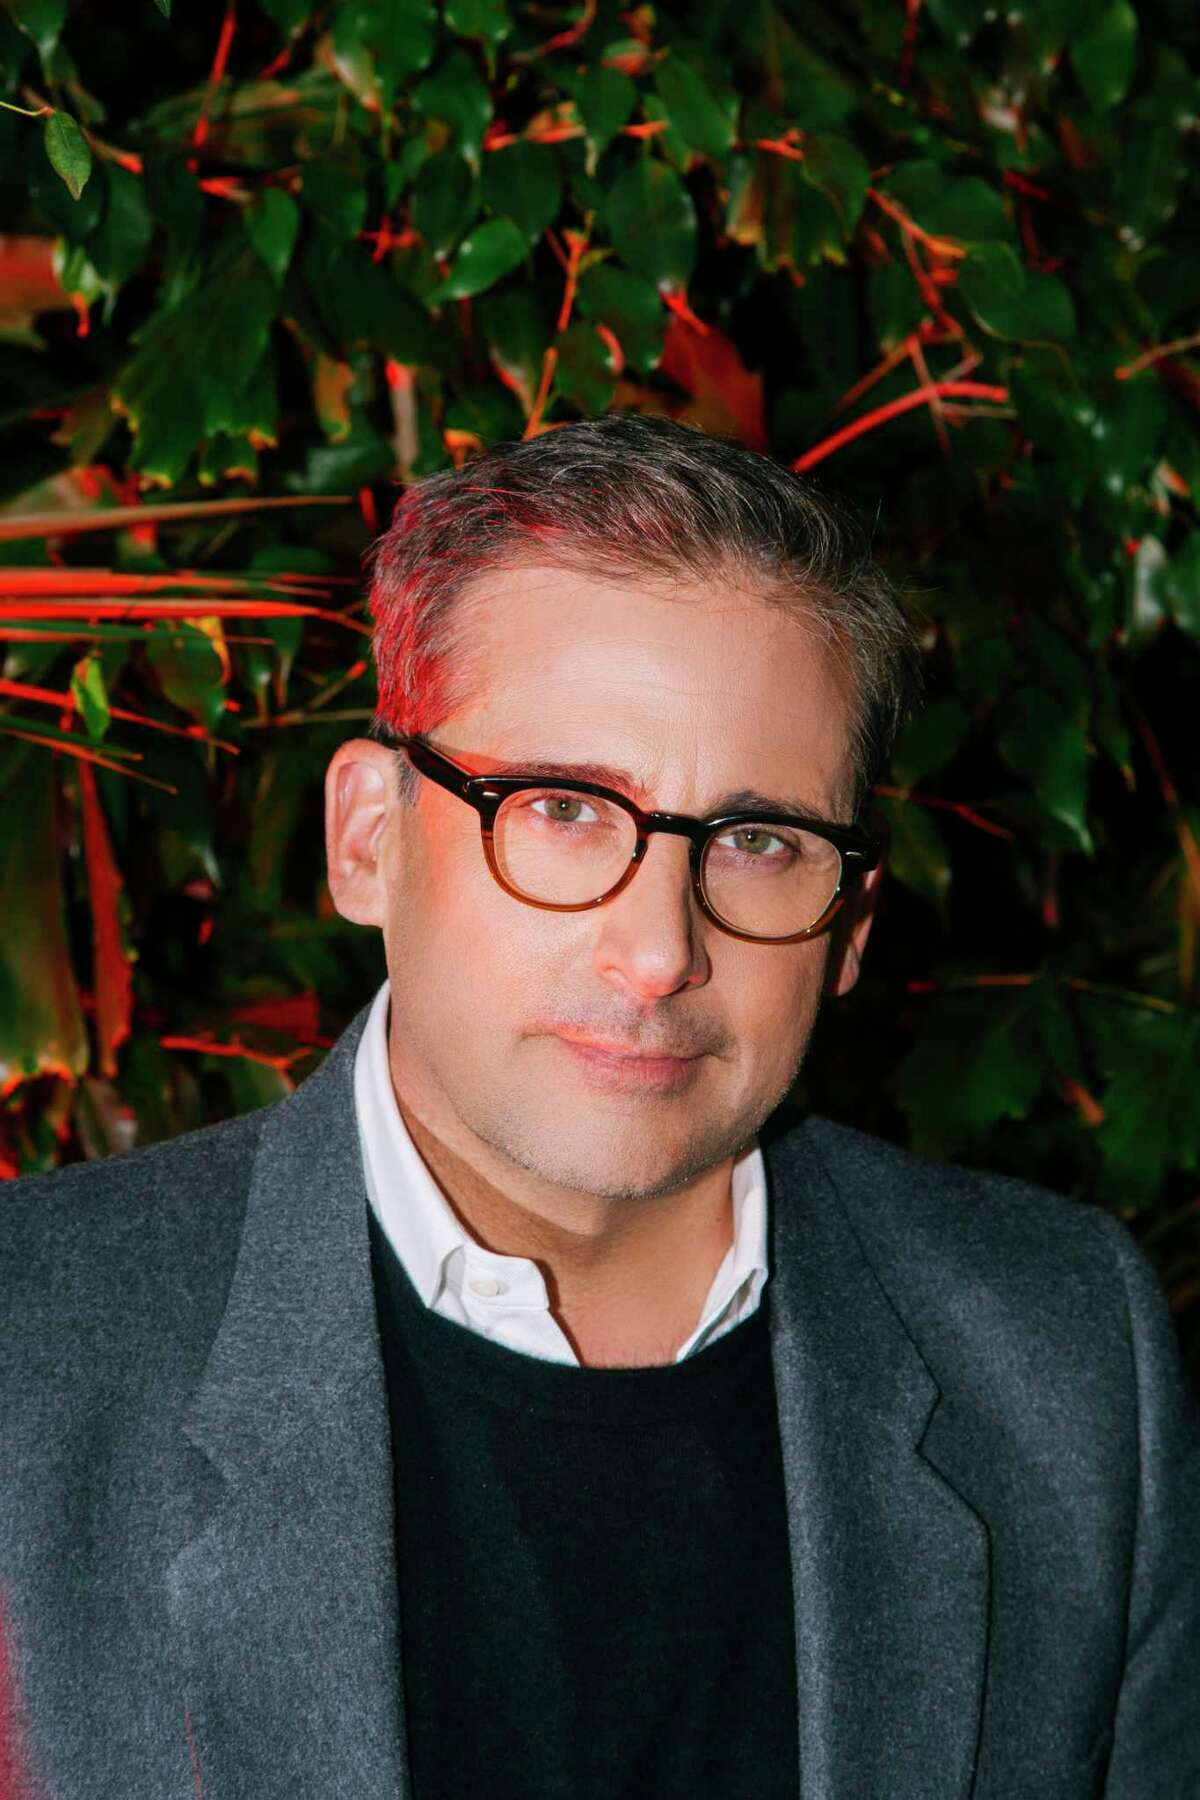 -- PHOTO MOVED IN ADVANCE AND NOT FOR USE - ONLINE OR IN PRINT - BEFORE NOV. 29, 2015. -- Steve Carell, a star of a€œThe Big Short,a€ in Beverly Hills, Calif., Nov. 14, 2015. In the comedy-drama, Carell plays a Wall Street trader who anticipated the subprime mortgage collapse. (Brinson+Banks/The New York Times) ORG XMIT: XNYT127